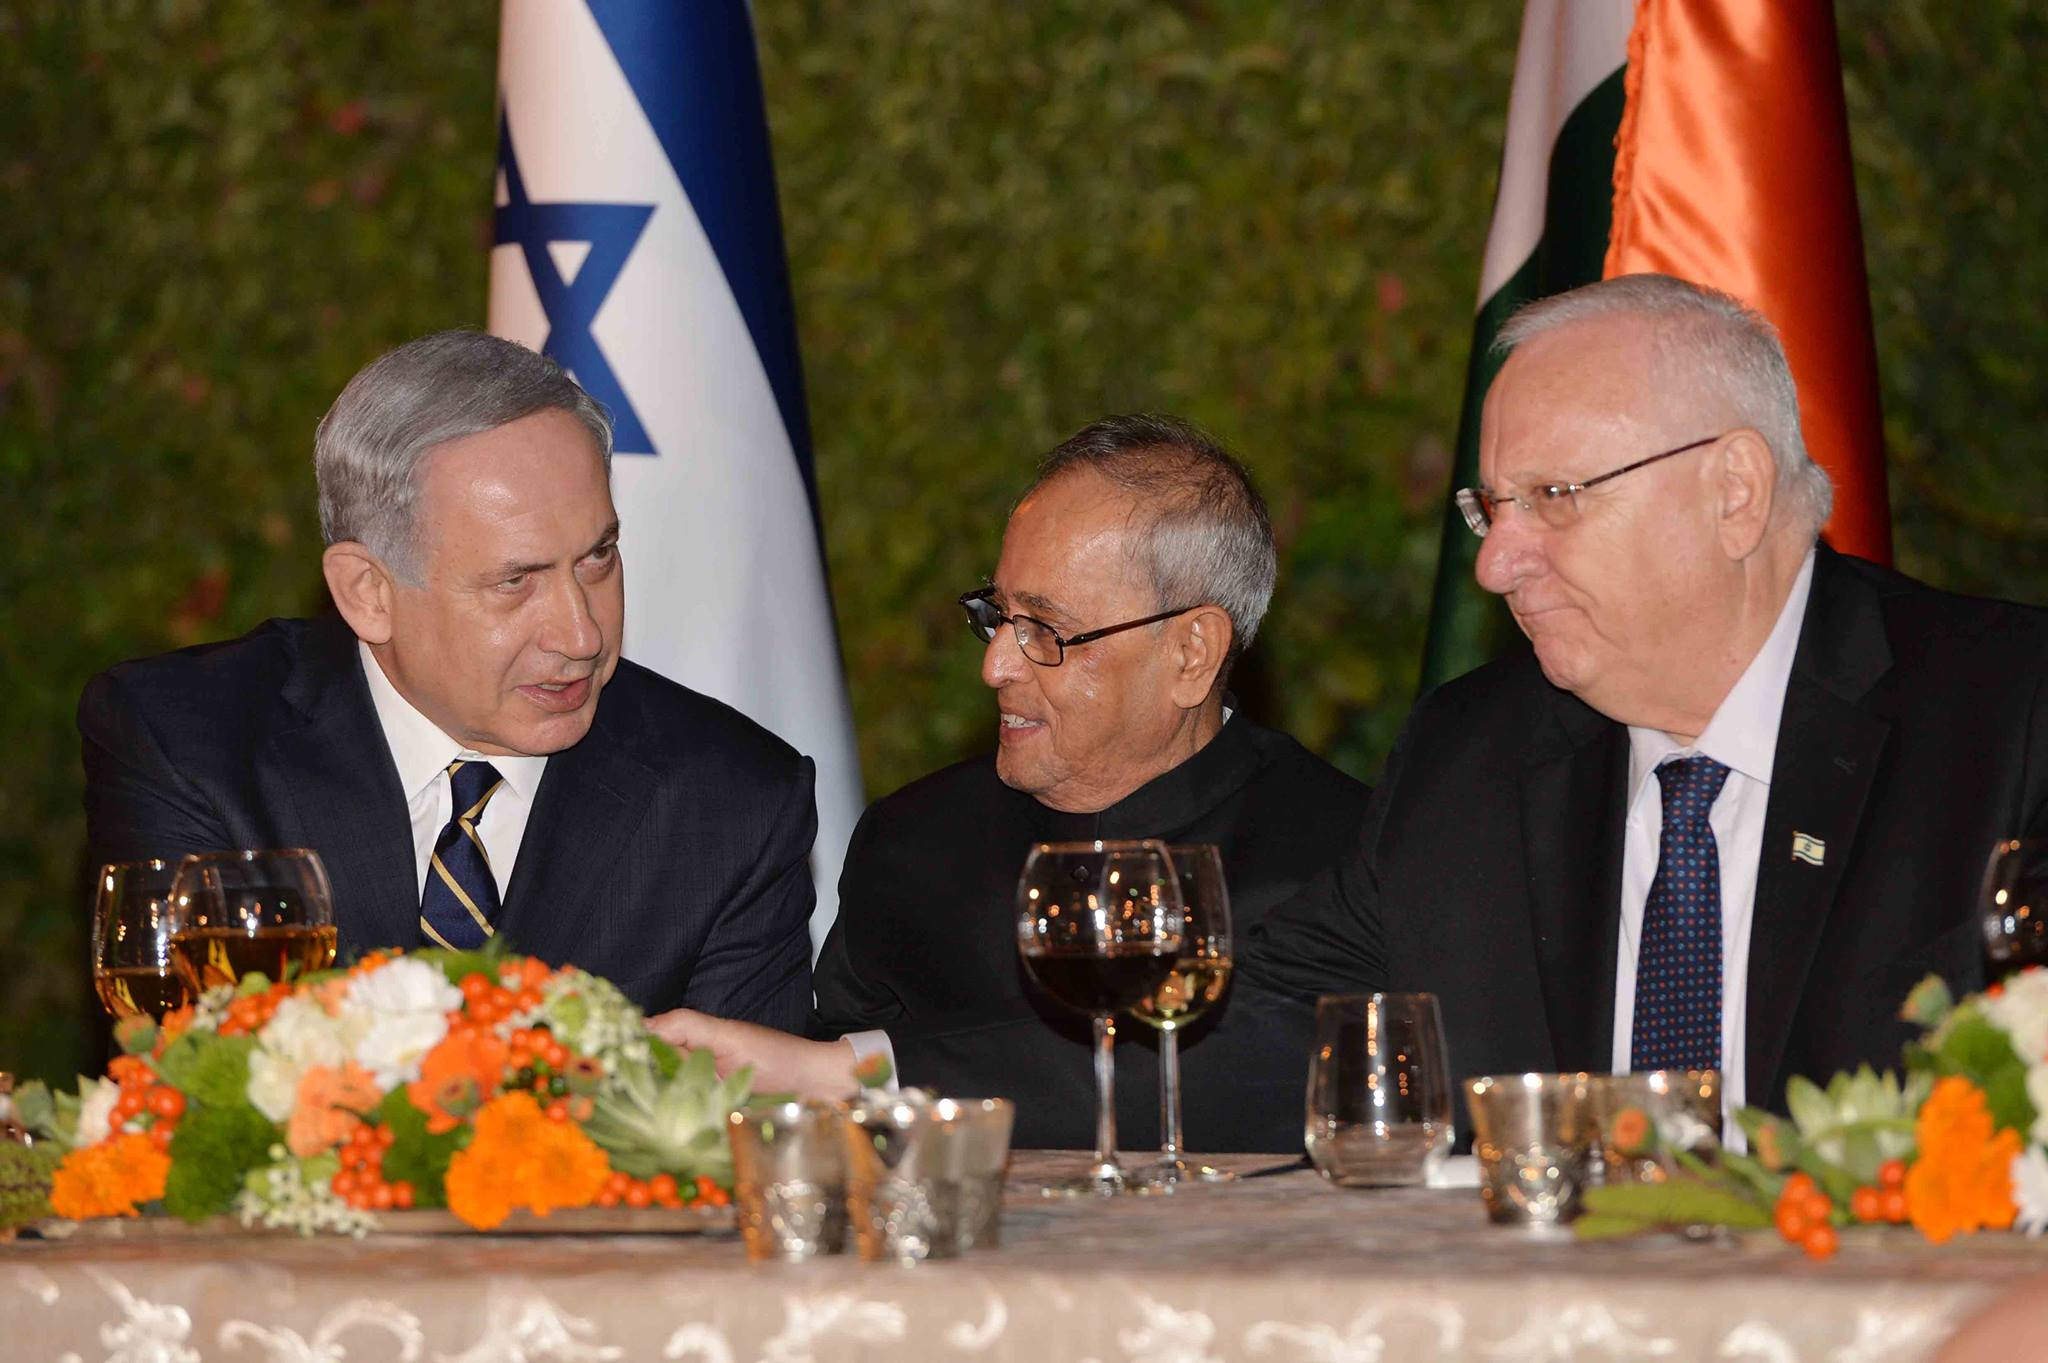 Israeli President Reuven Rivilin scheduled to visit India at a time when the country makes tectonic shift in its Middle Eastern policy.